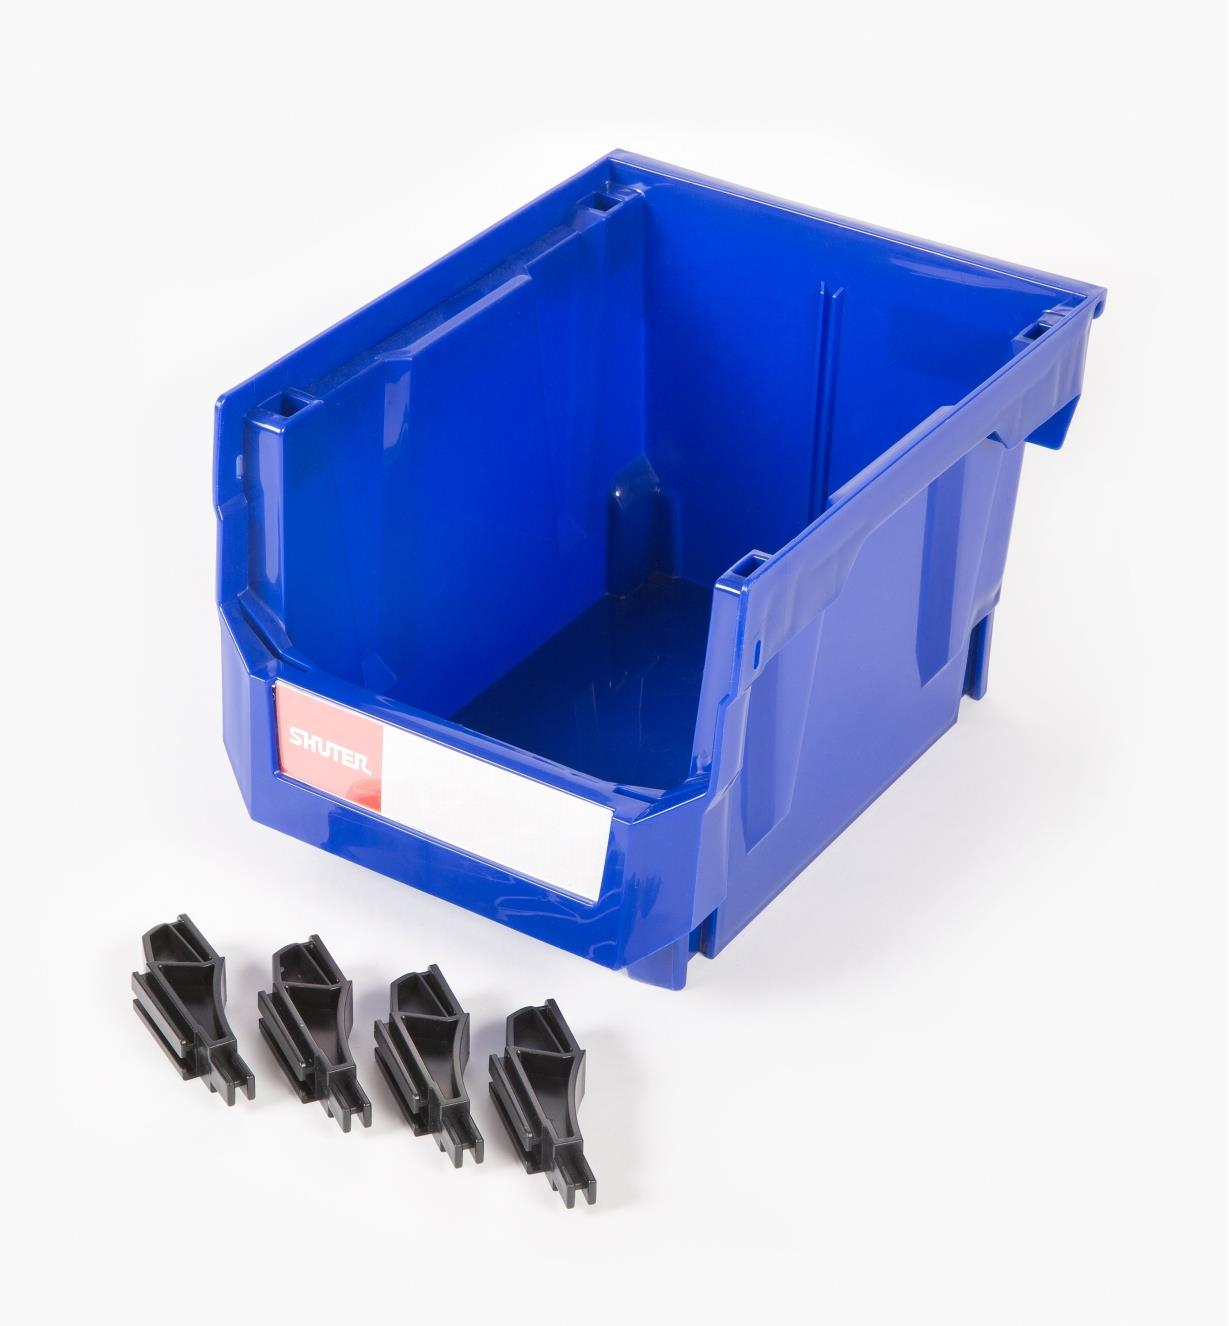 68K4264 - 175mm x 170mm x 245mm Stackable Storage Bin